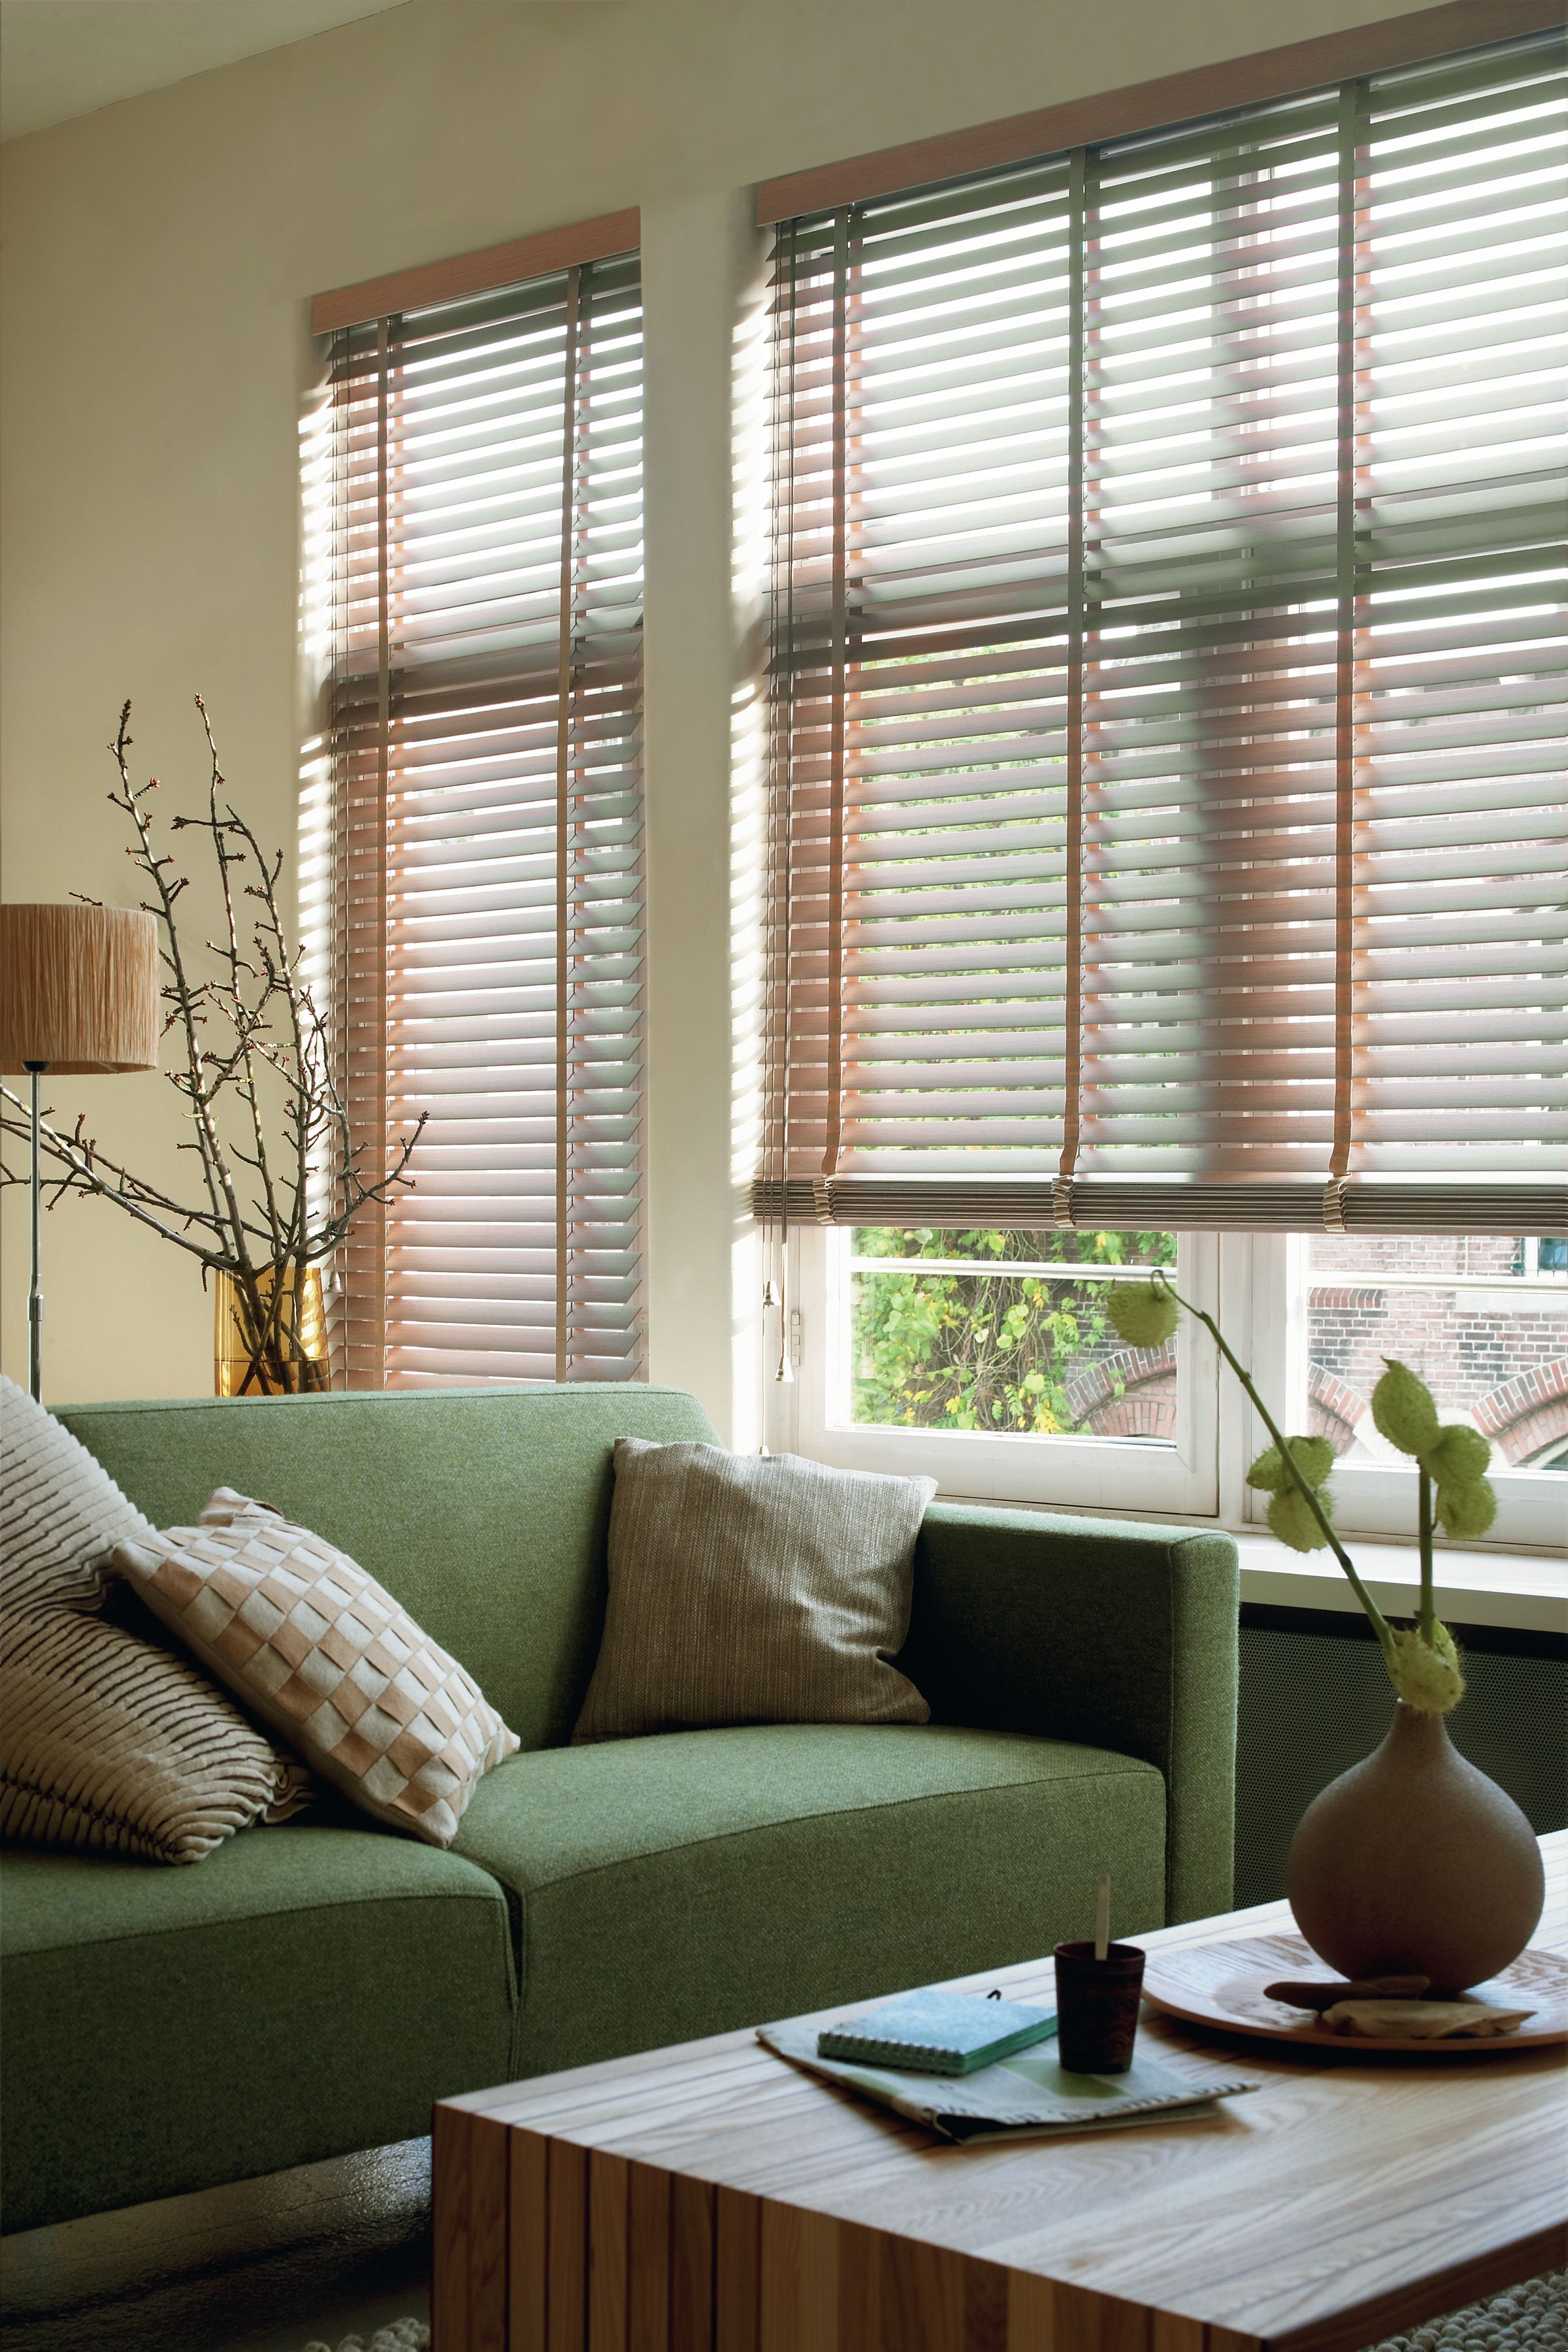 Luxaflex Wood Venetian Blinds In Natural Earth Coloured Living Room Wood Blinds Luxaflex